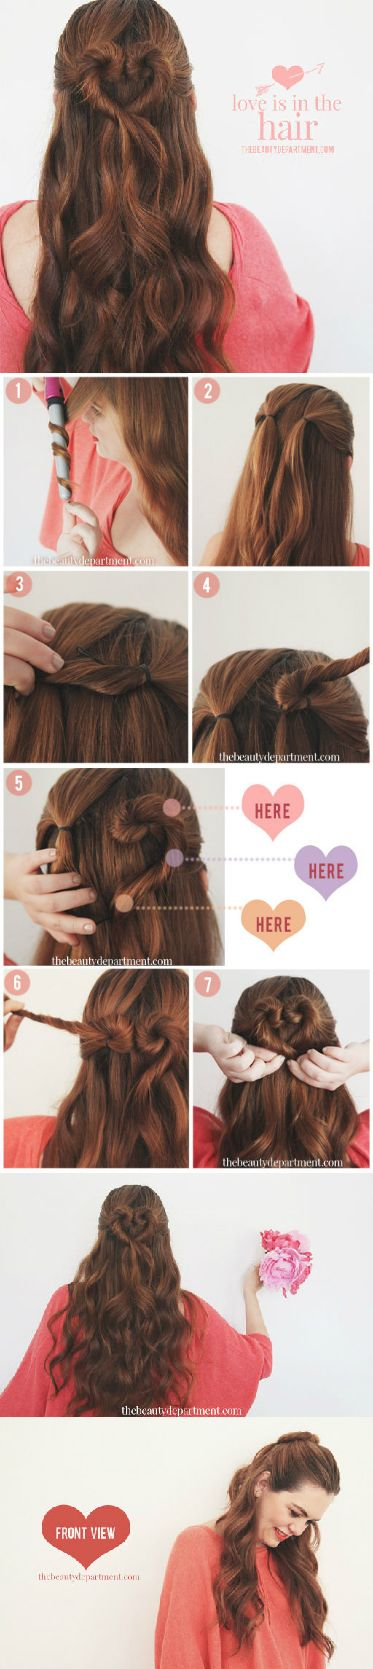 hair tutorial - THE HEART BUN http://www.pinterest.com/ahaishopping/